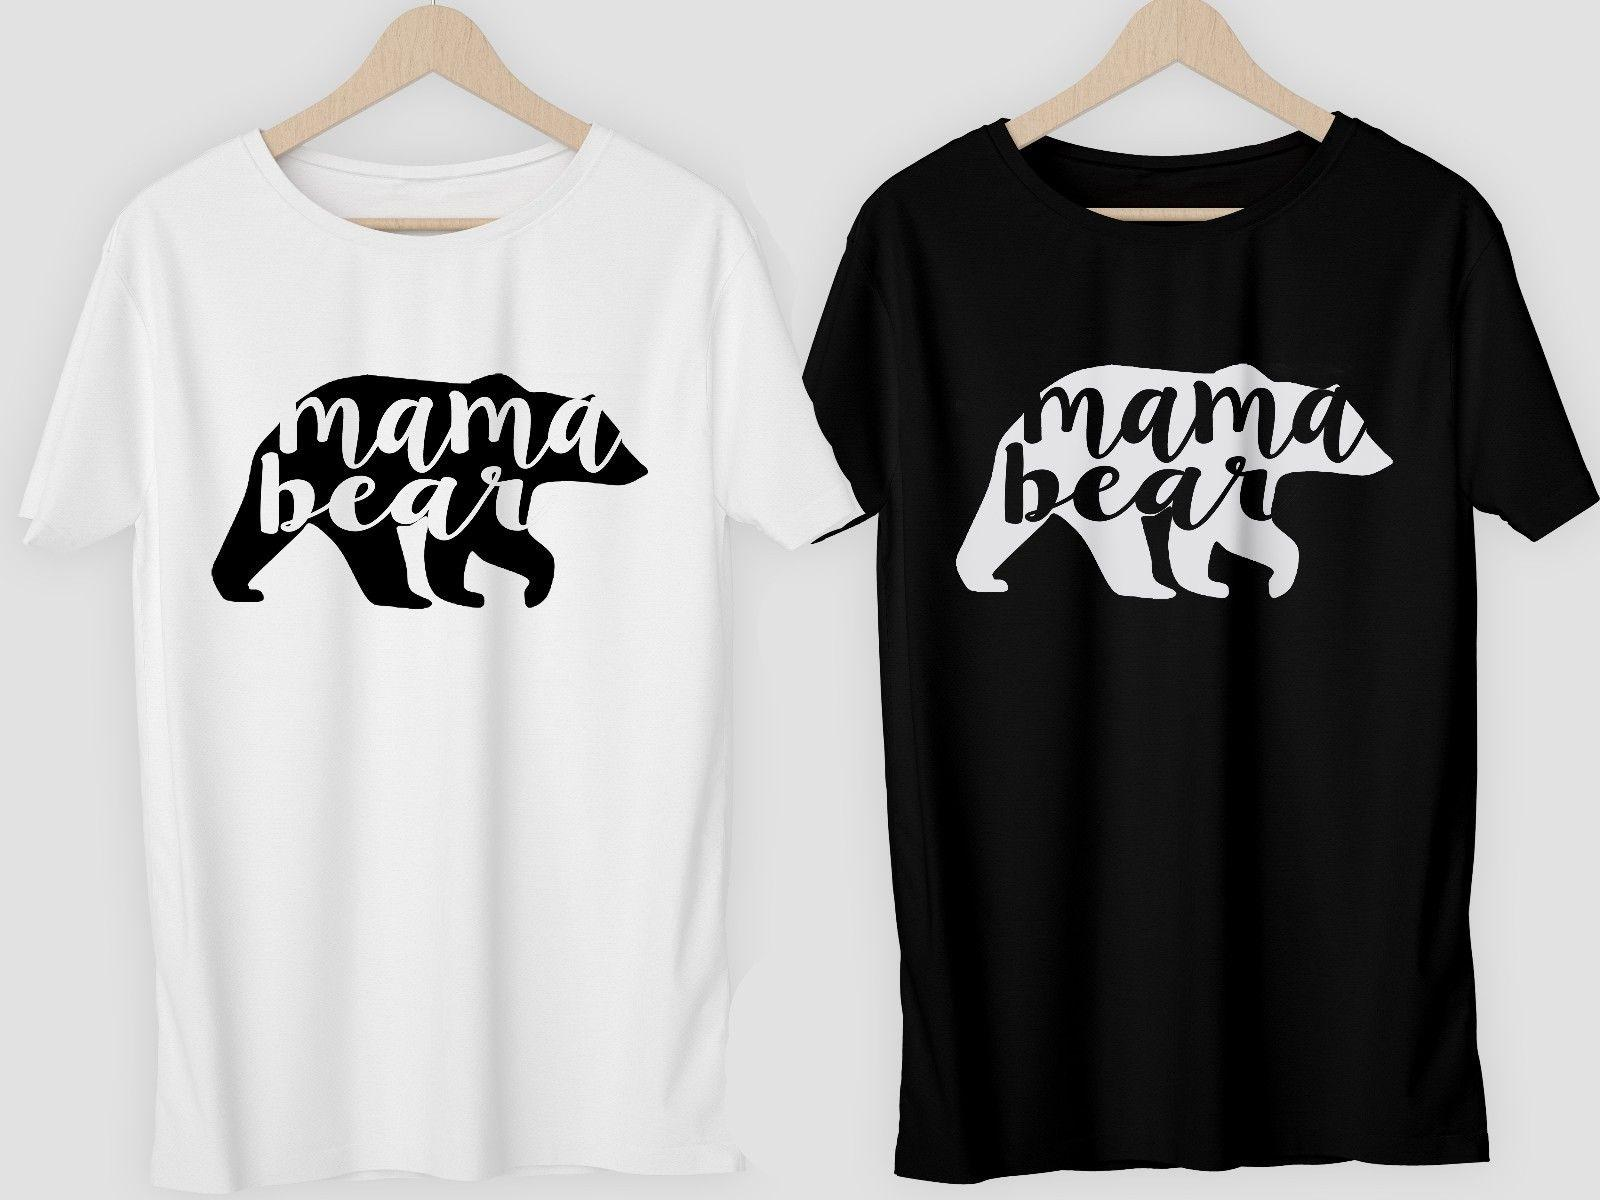 b3d80413 Mama Bear T Shirt or diy vinyl Top Gift Mother's Day womens unisex v-neck  Funny free shipping Unisex Casual